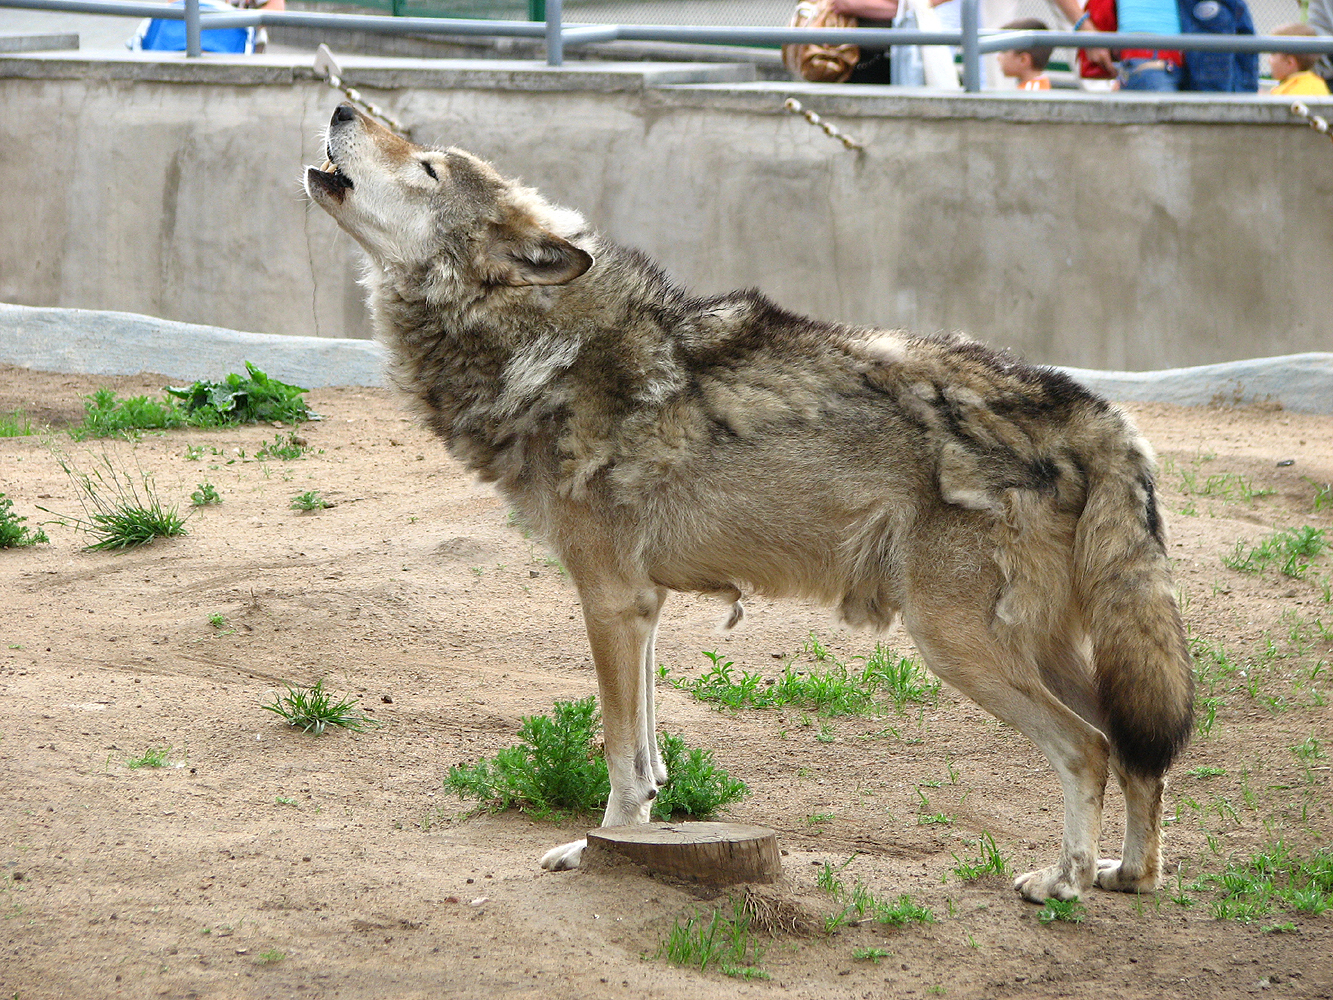 http://upload.wikimedia.org/wikipedia/commons/3/32/Howling_wolf_01.jpg